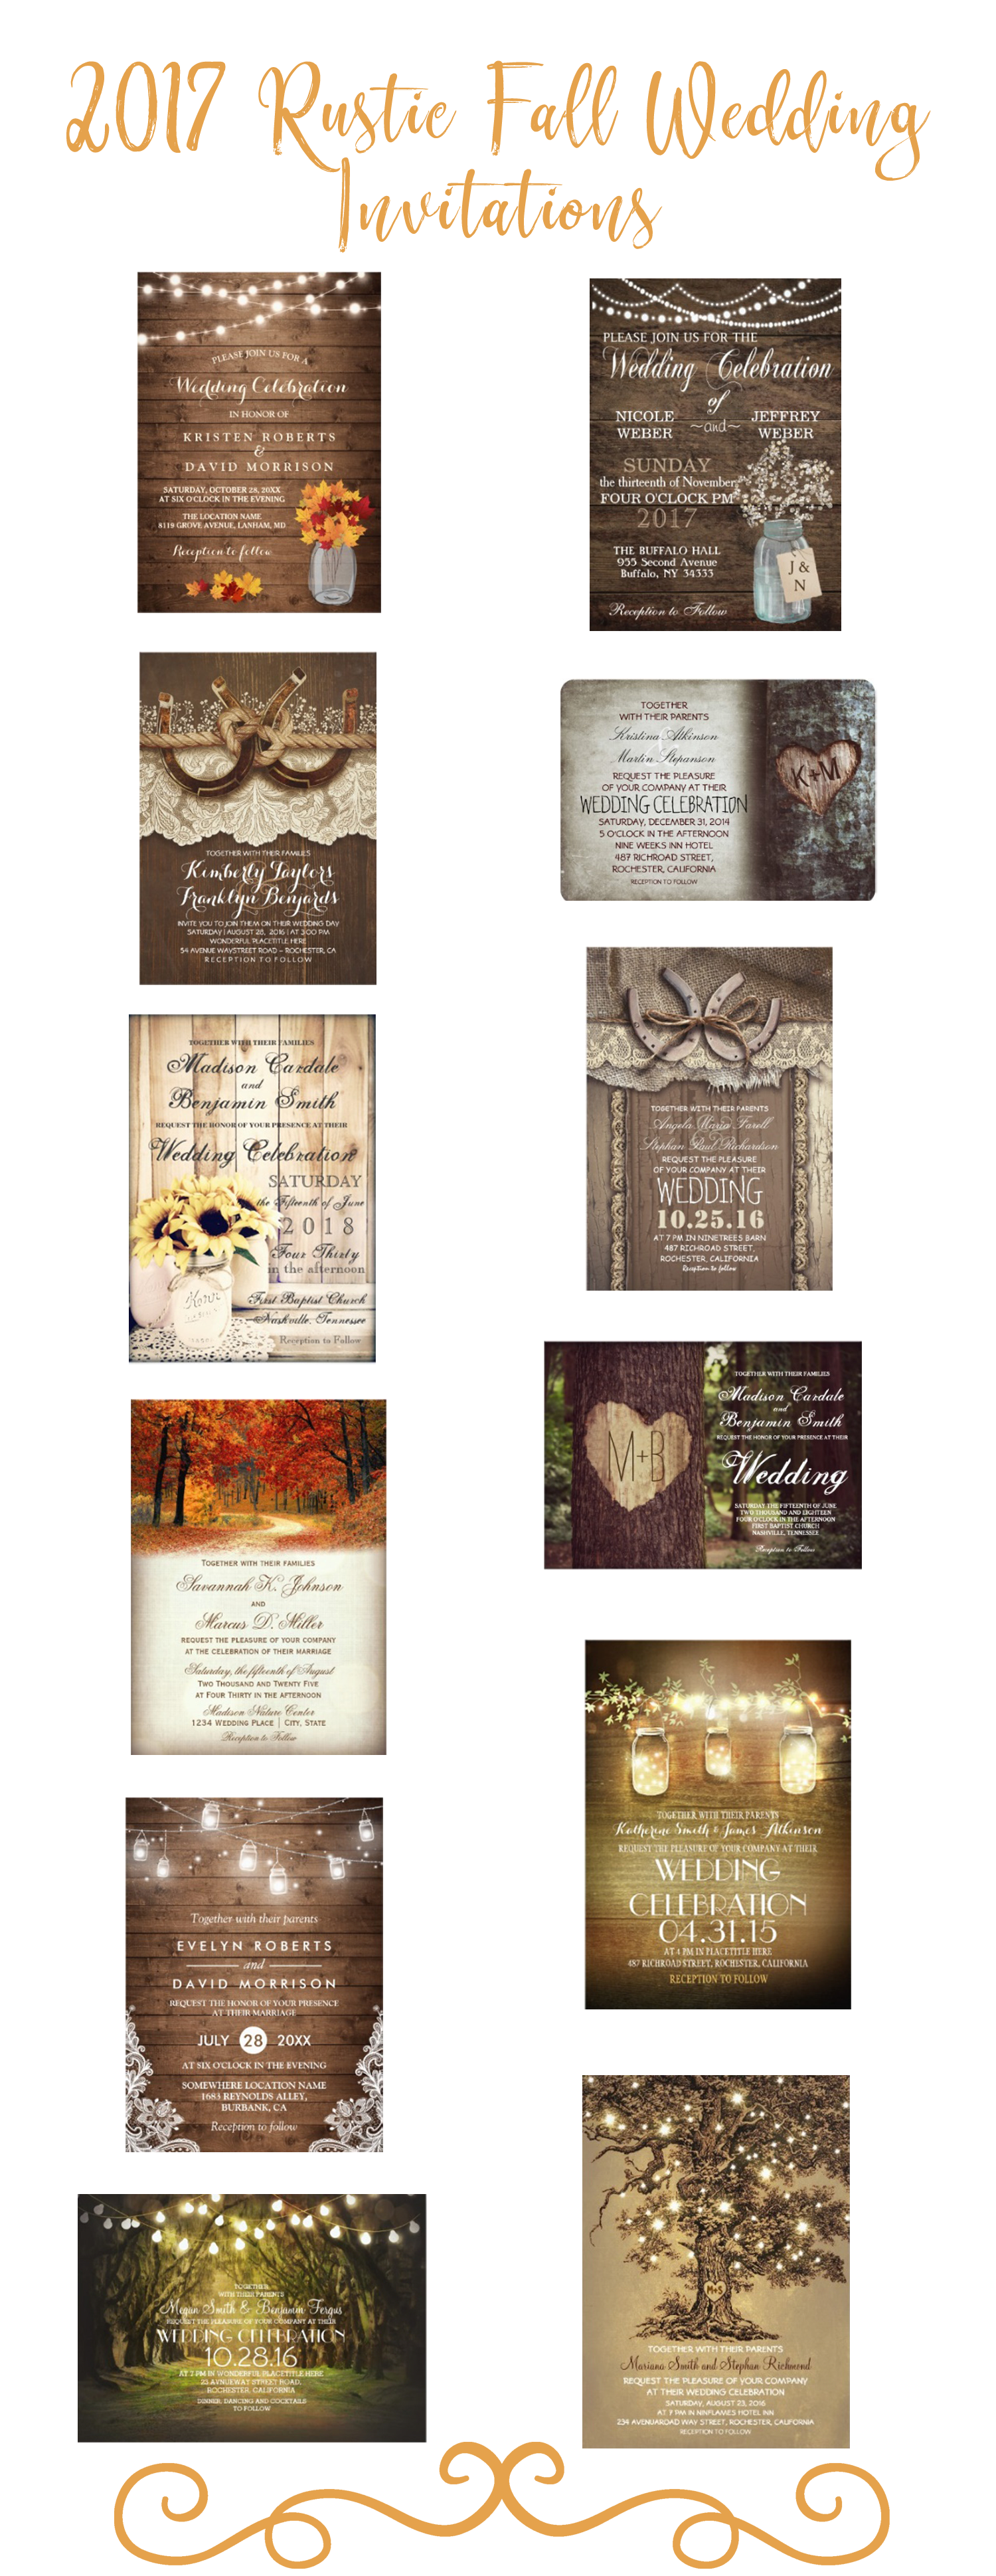 rustic autumn fall 2017 wedding invitations